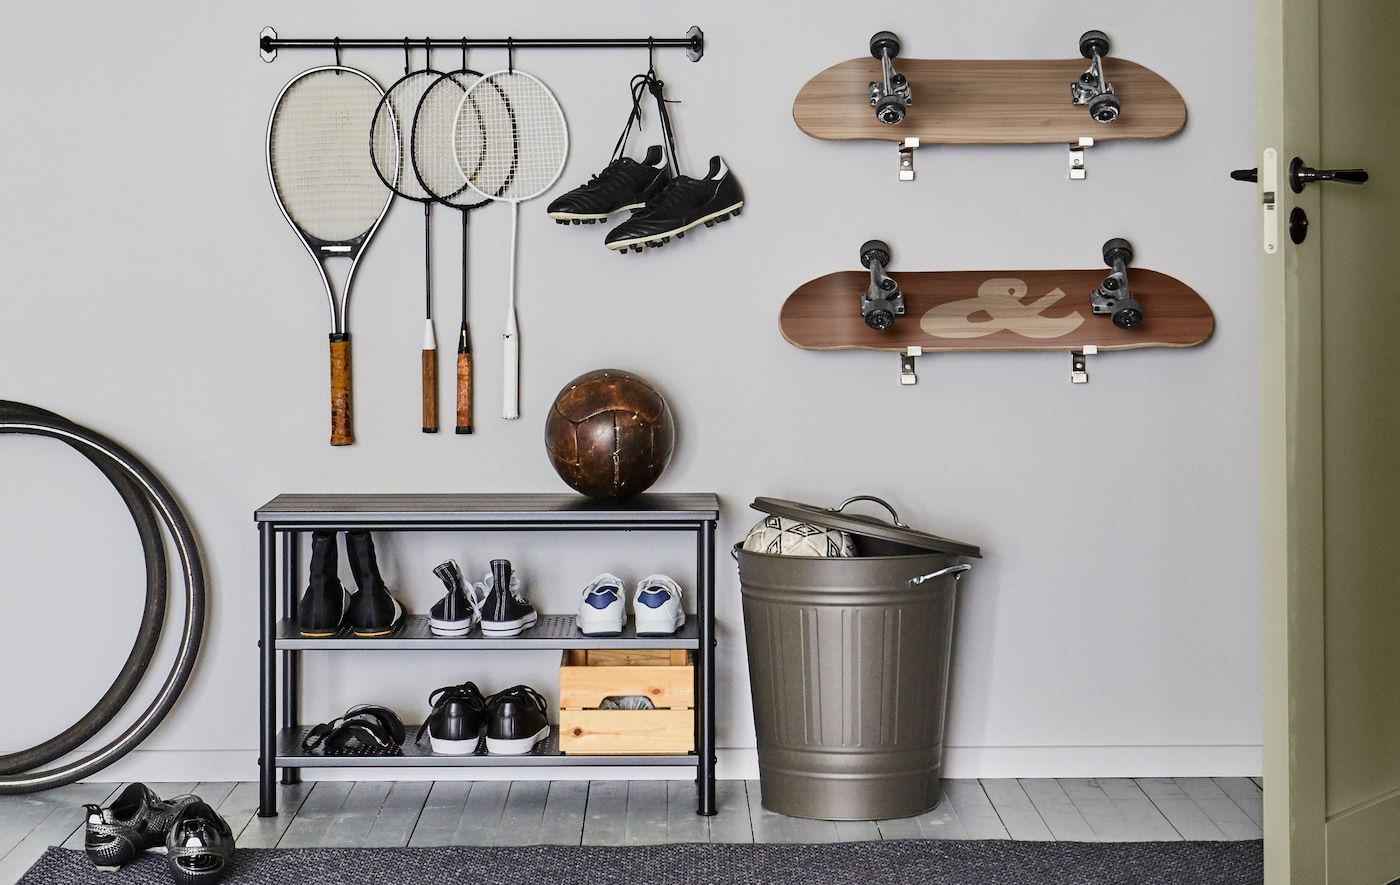 If you and your kids are always on the go, keep your sports gear organised and ready to go right by the door.